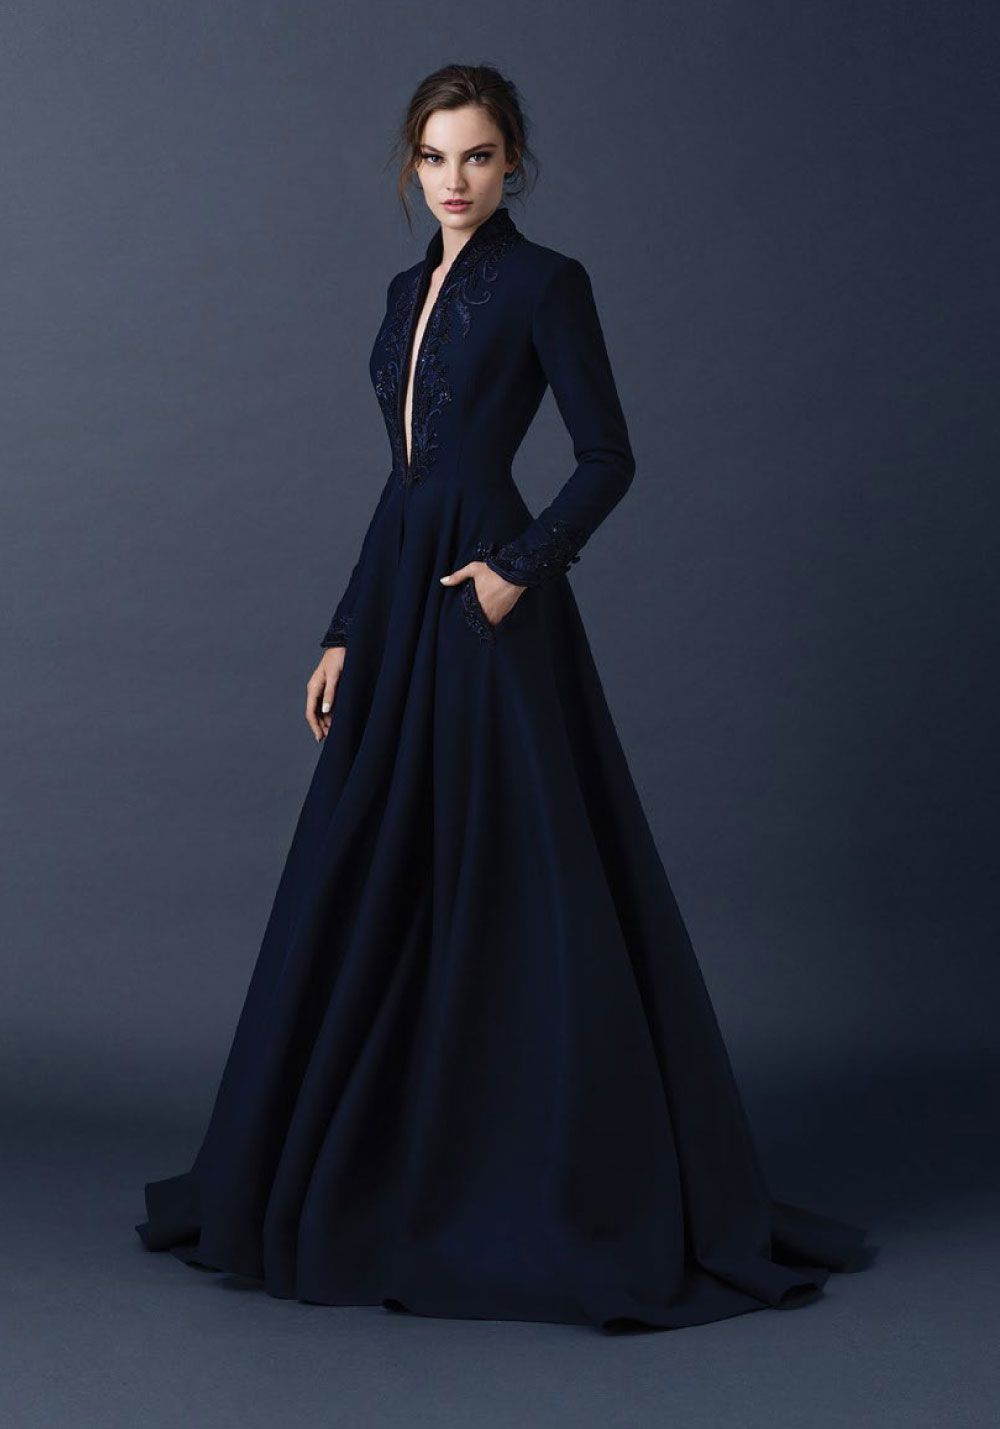 2015 AW Couture | Paolo Sebastian midnight blue high collar dress ...